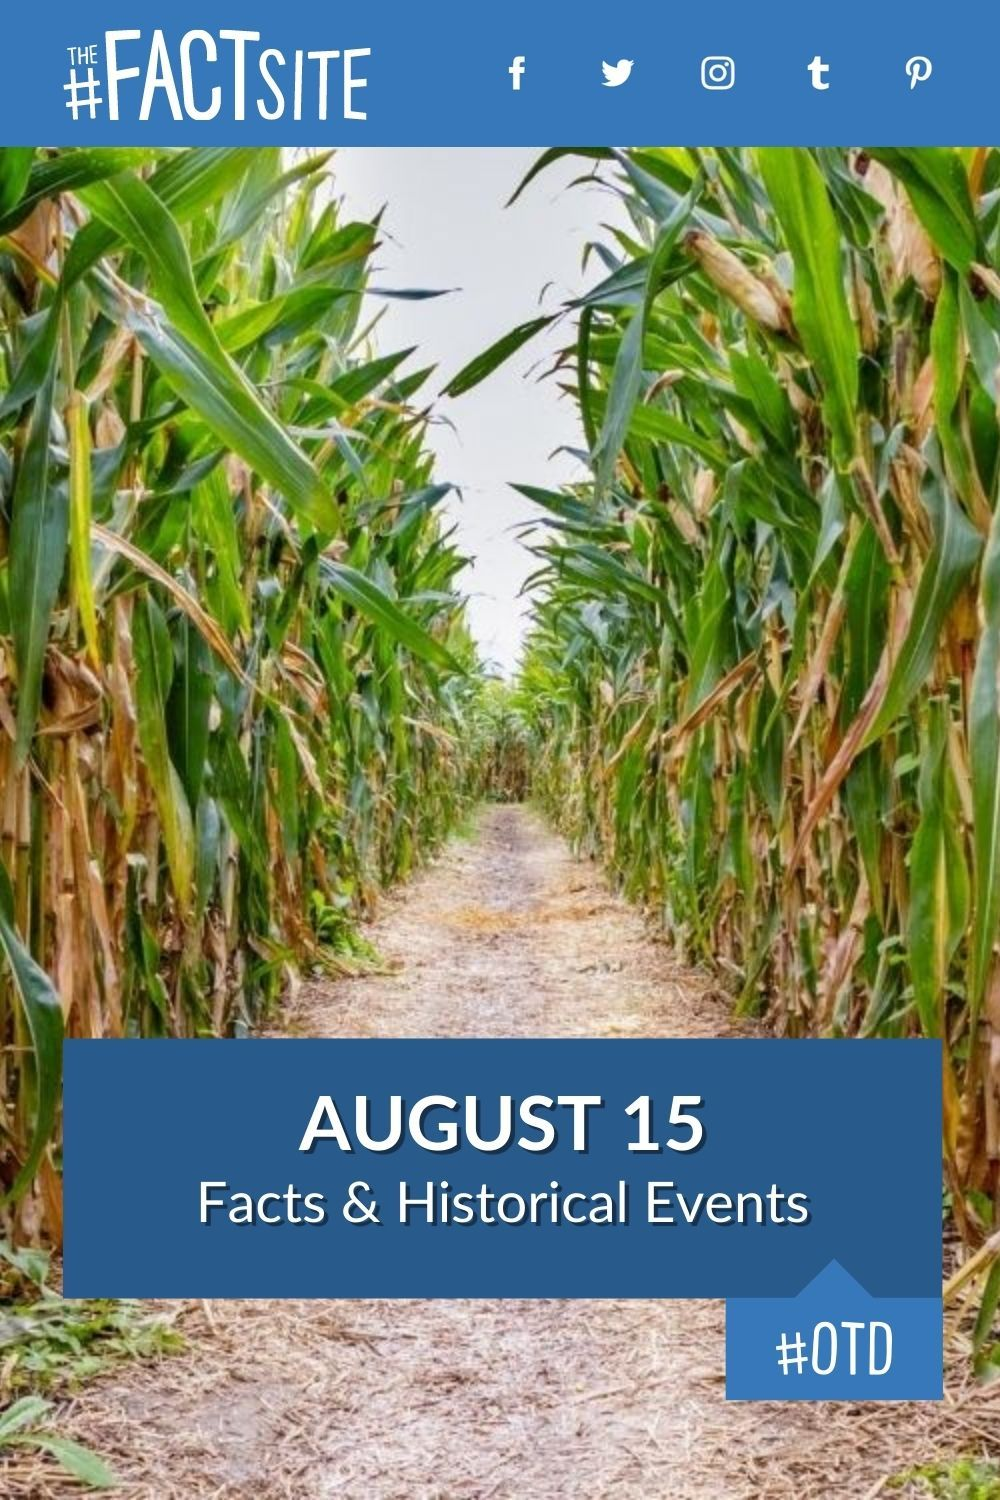 Facts & Historic Events That Happened on August 15